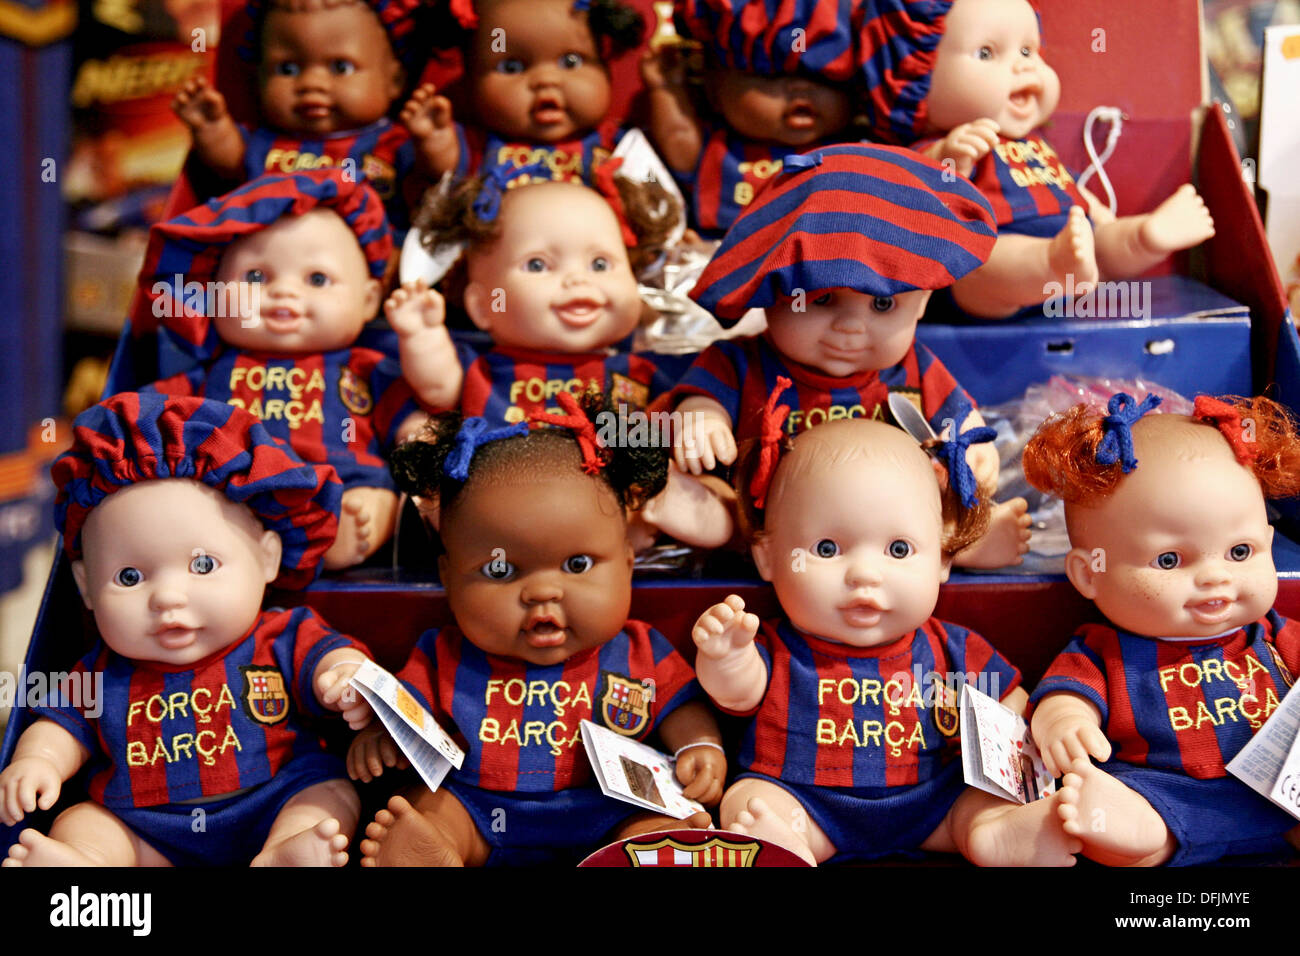 FC Barcelona´s dolls, official product. - Stock Image